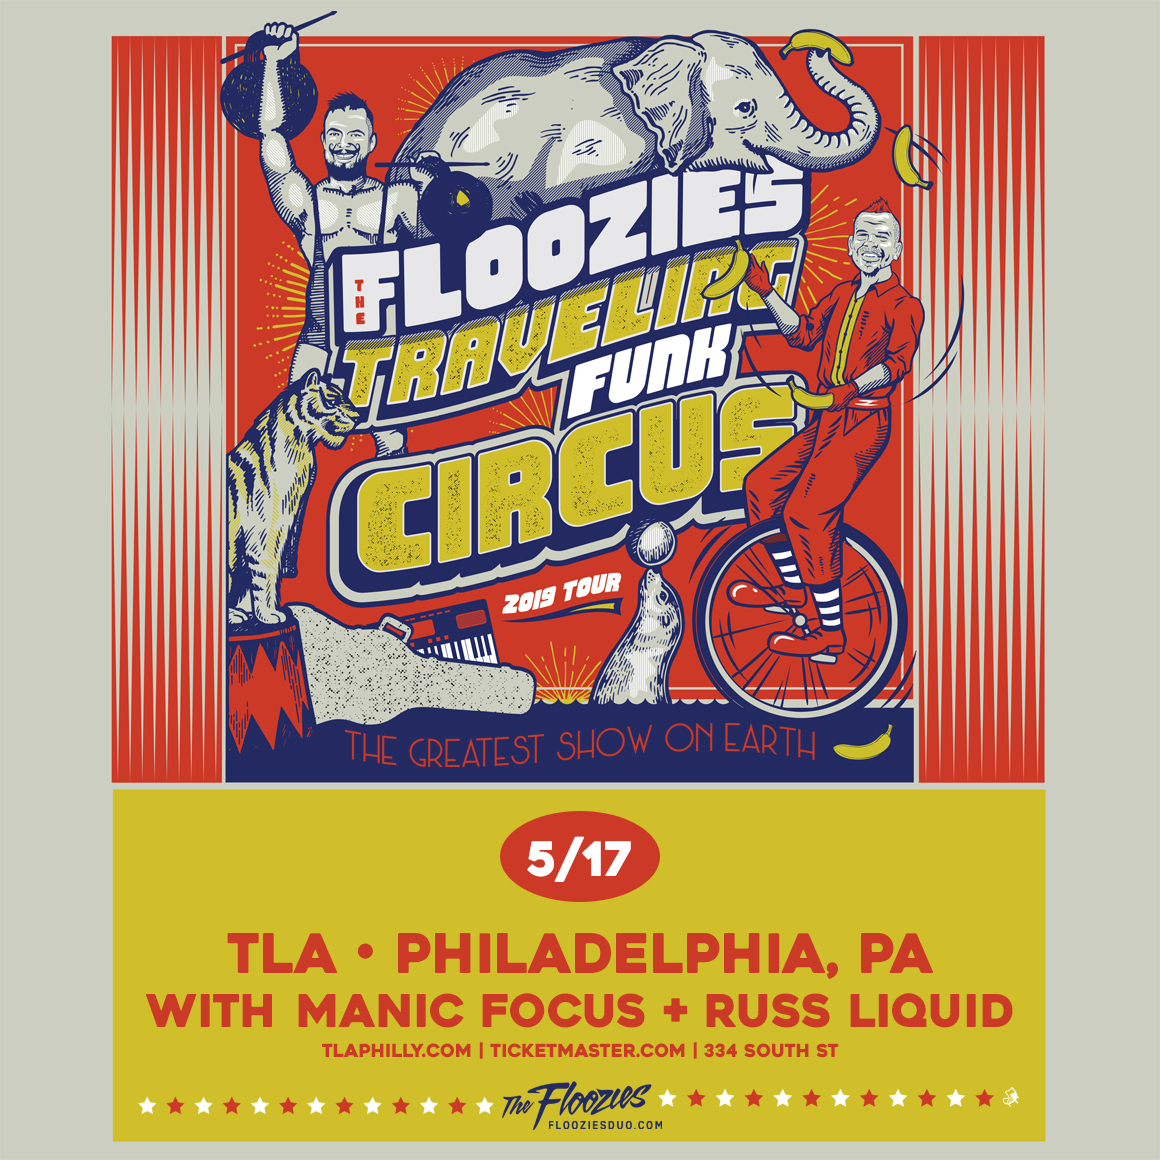 The Floozies: Traveling Funk Circus Tour — Steez Promo